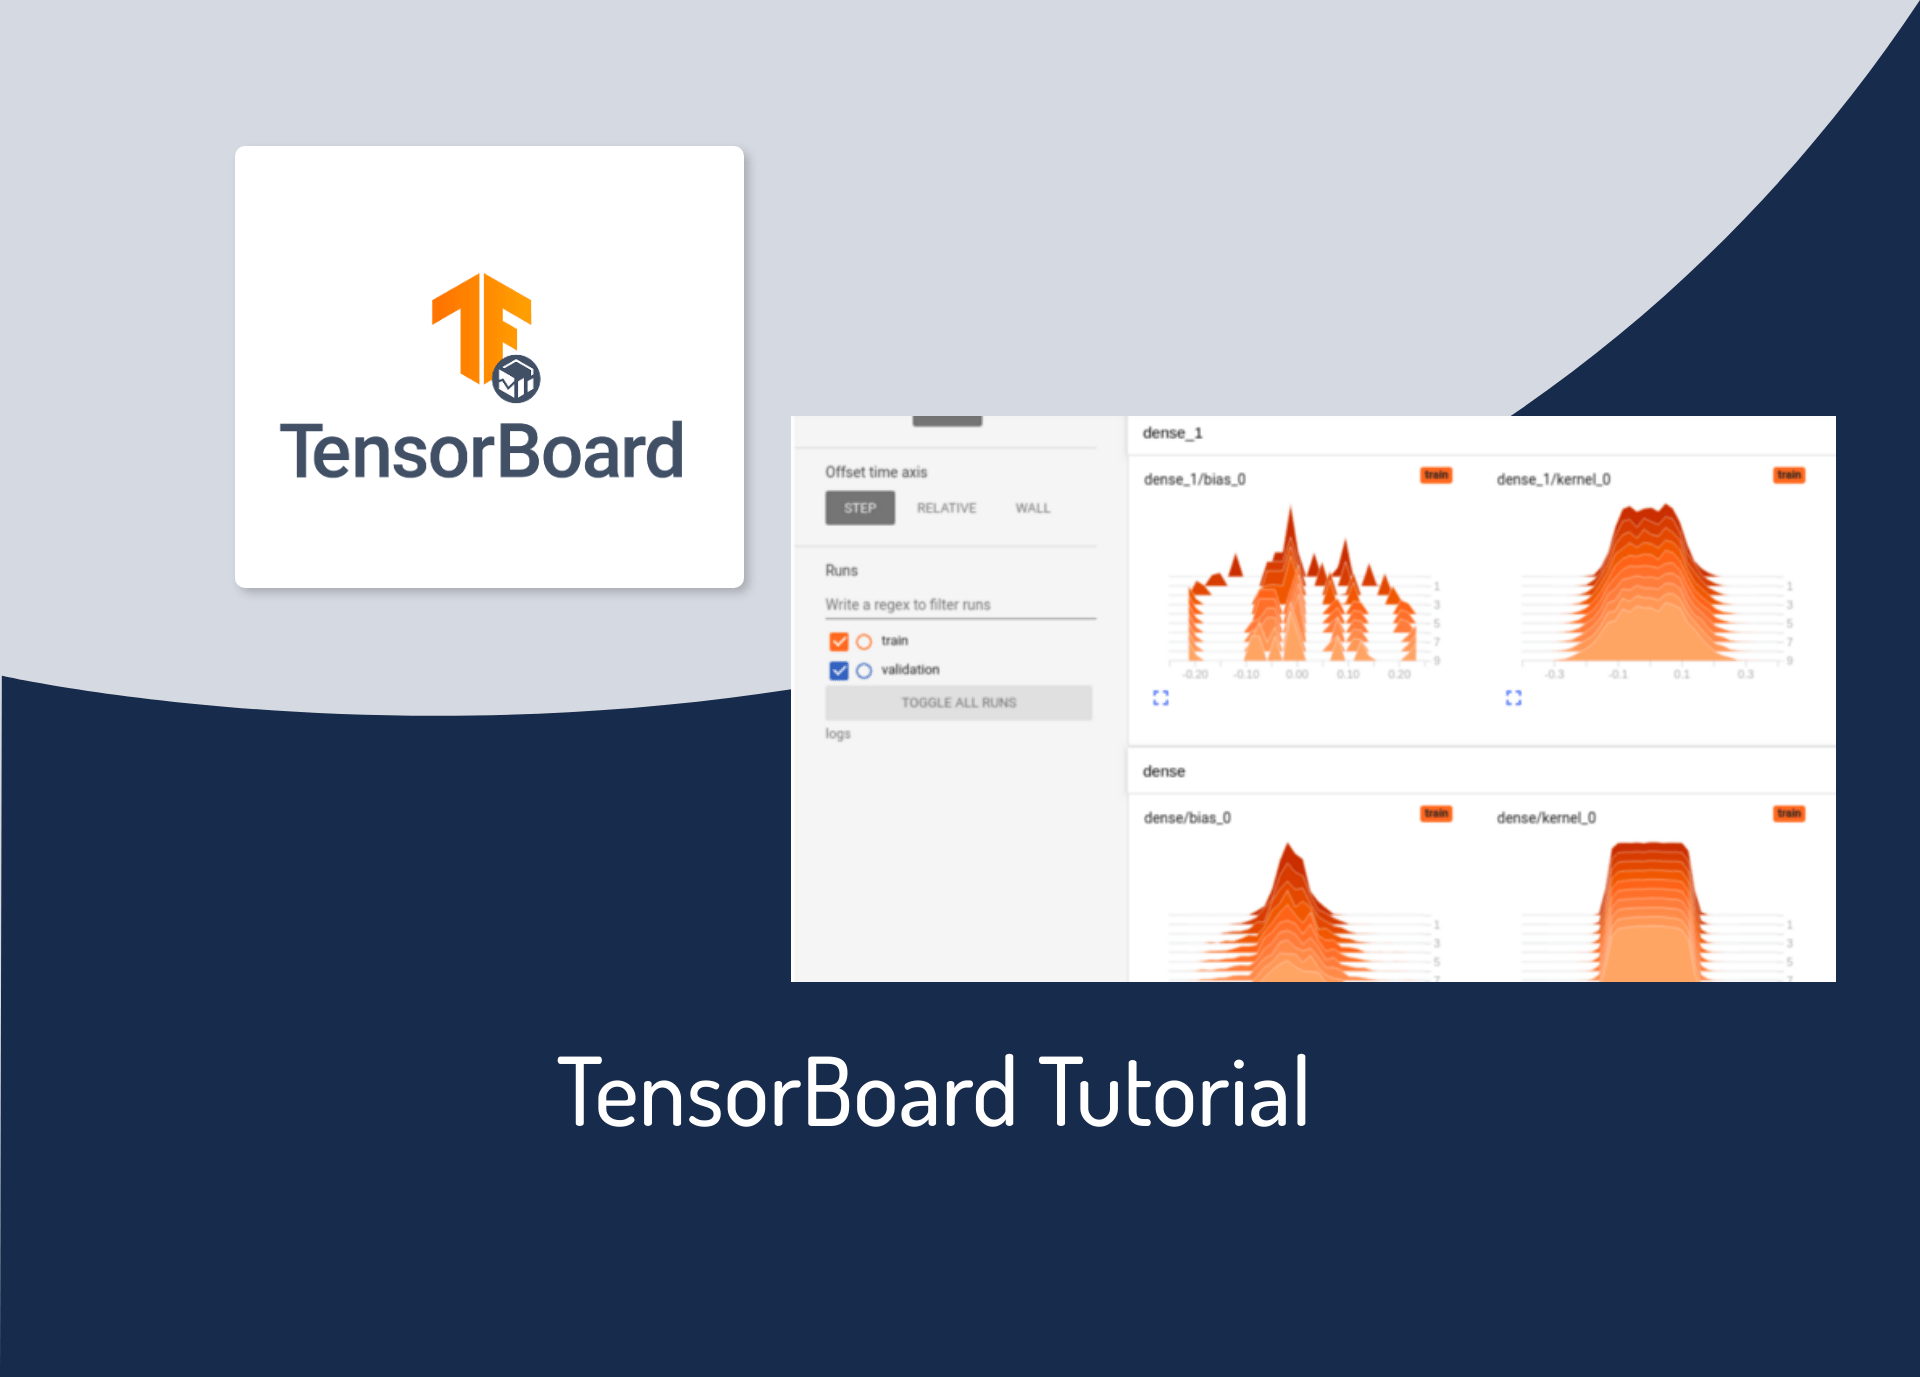 Deep dive into TensorBoard: Tutorial With Examples